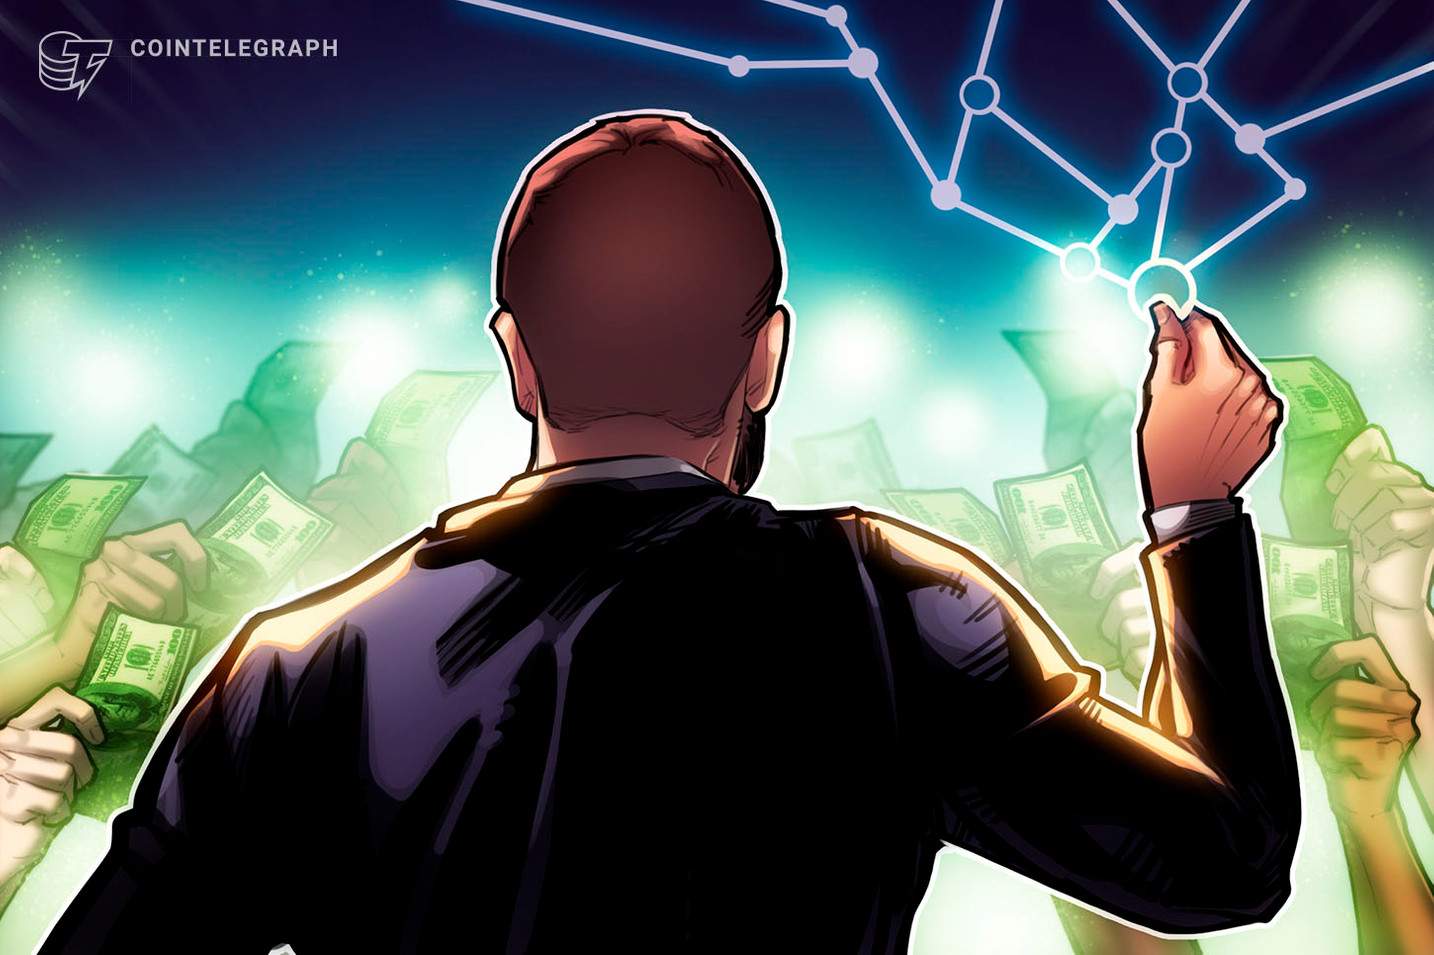 Venture capitalists invest over $16B in blockchain equity since 2012